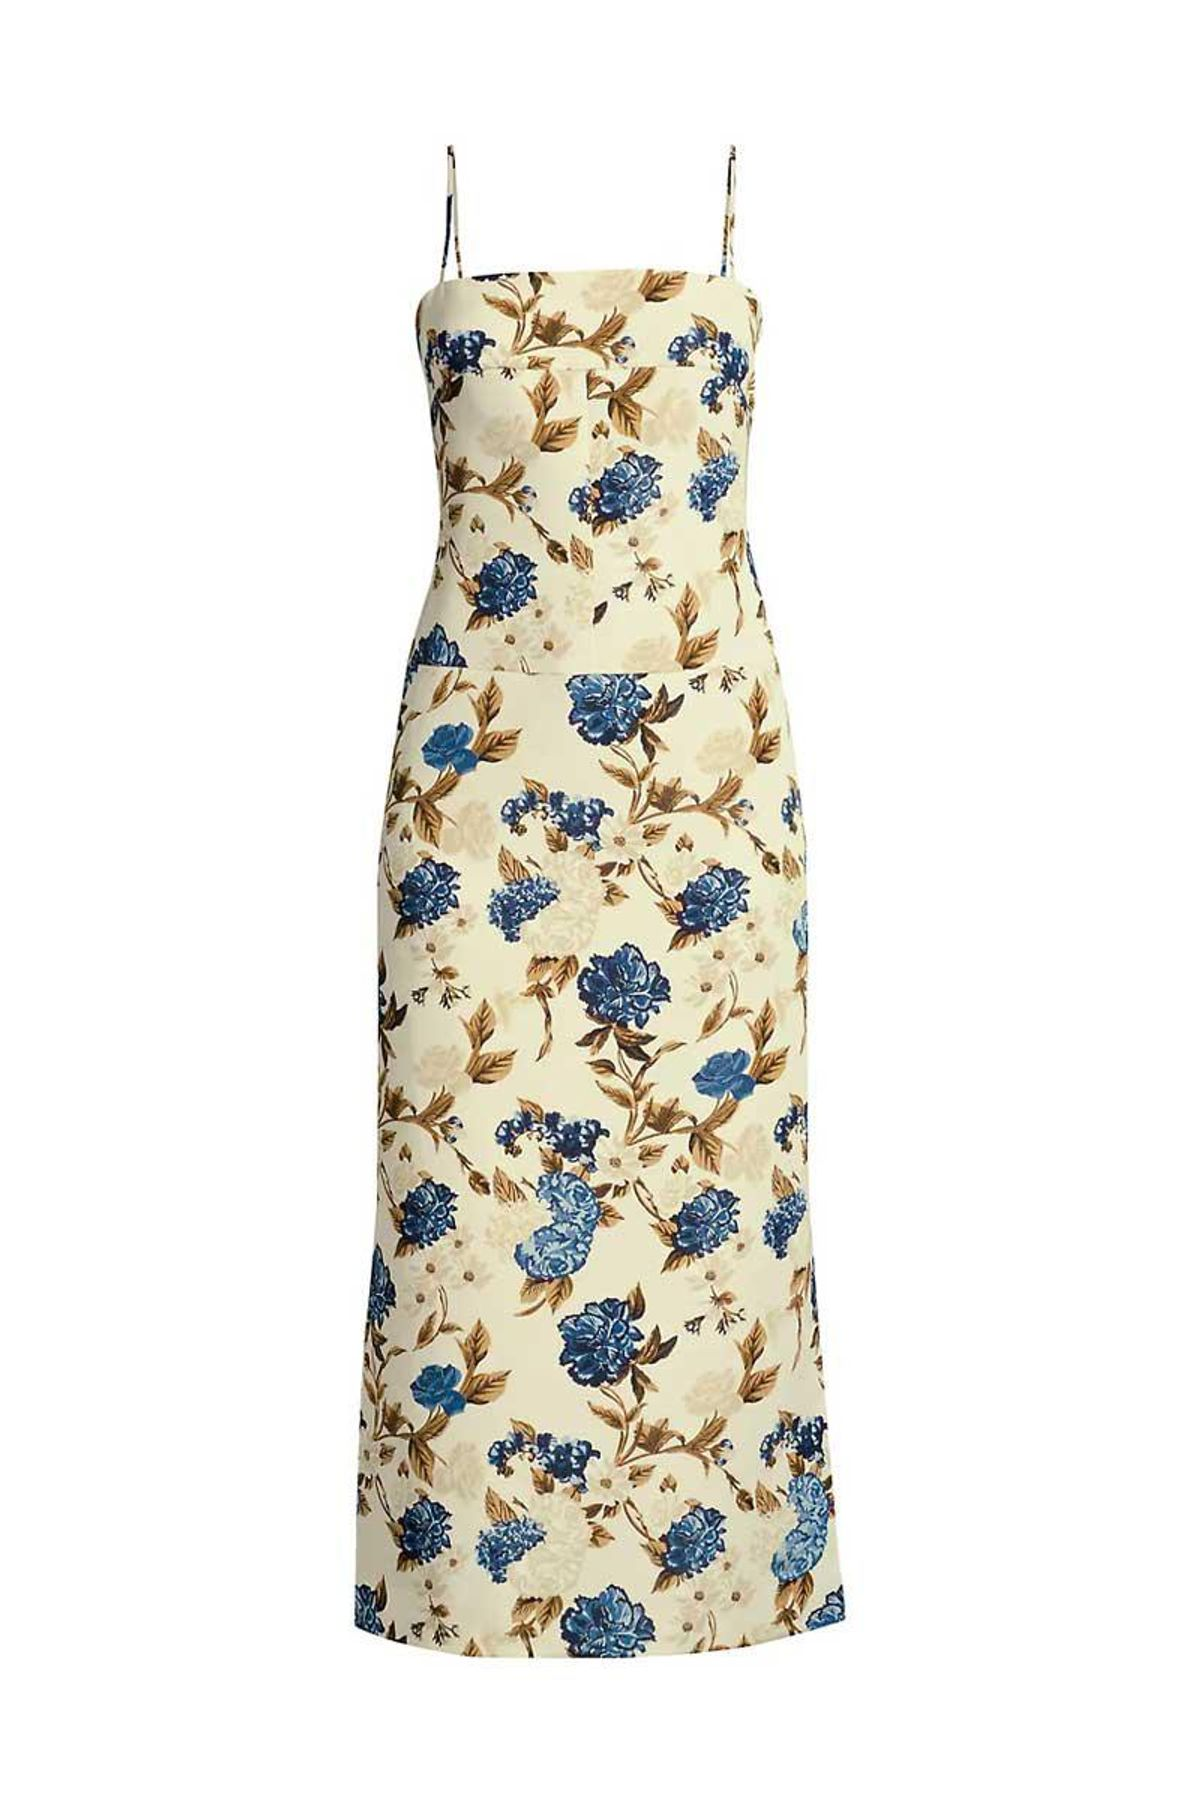 tory burch mixed floral strappy back midi dress